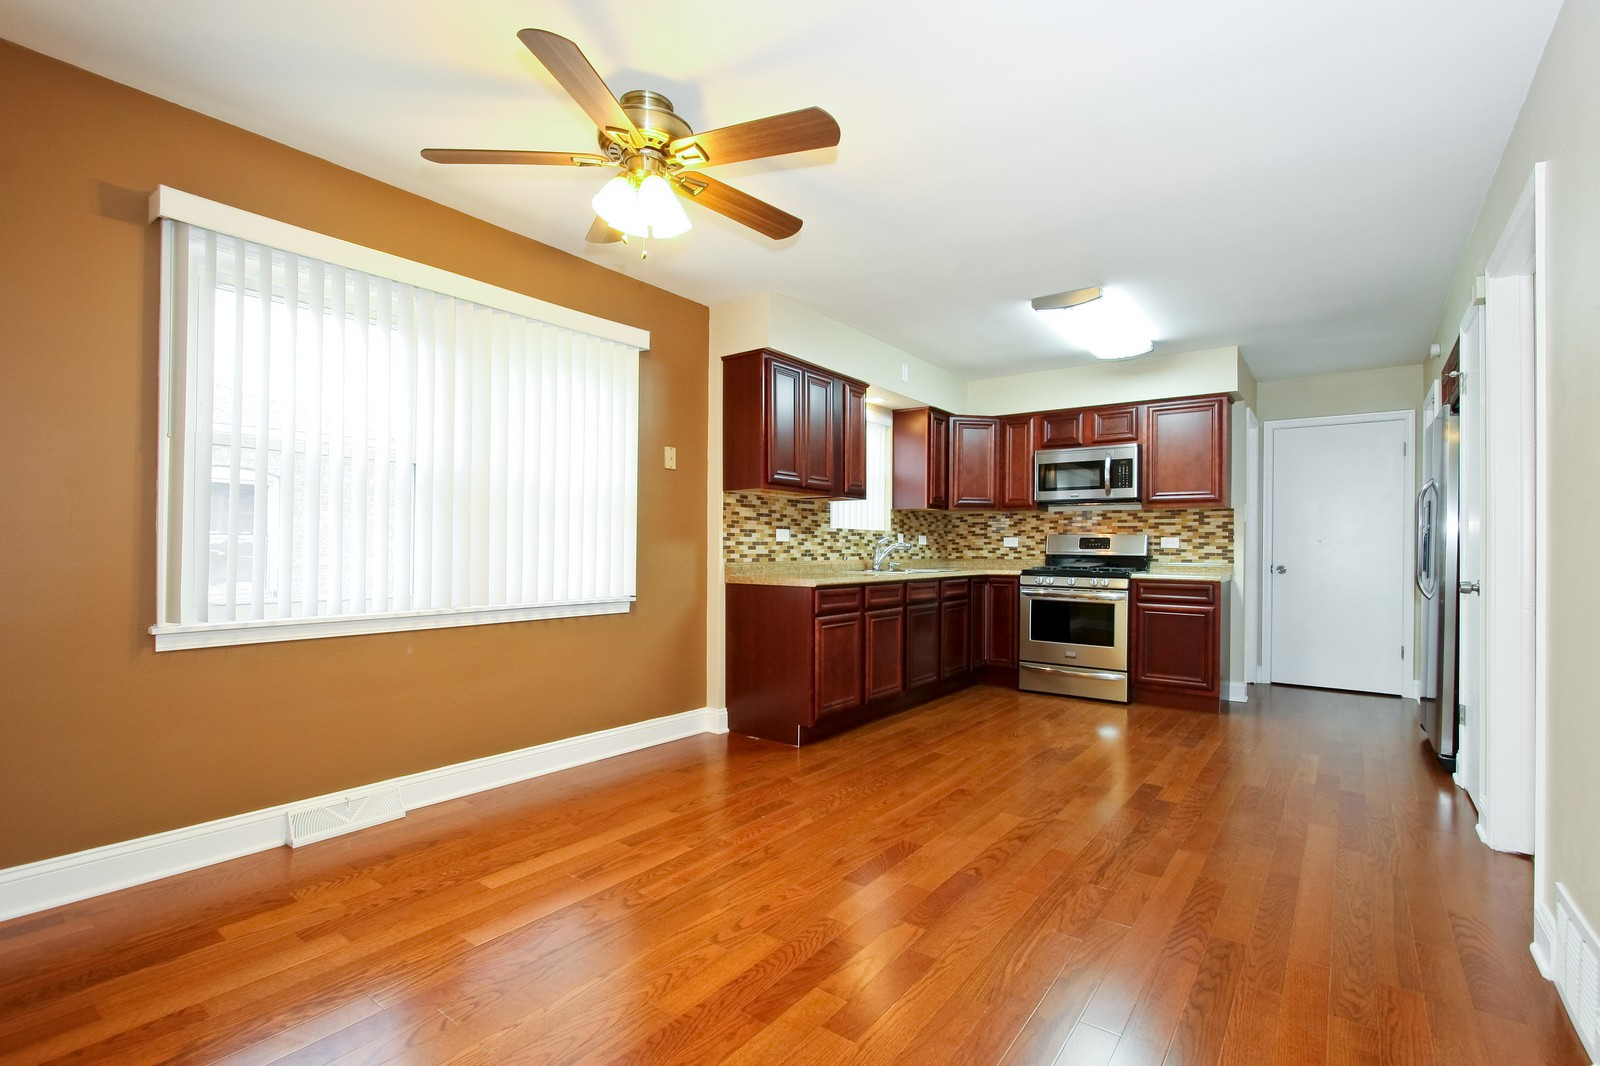 Real Estate Photography - 1025 E 156th St, Dolton, IL, 60419 - Kitchen / Dining Room